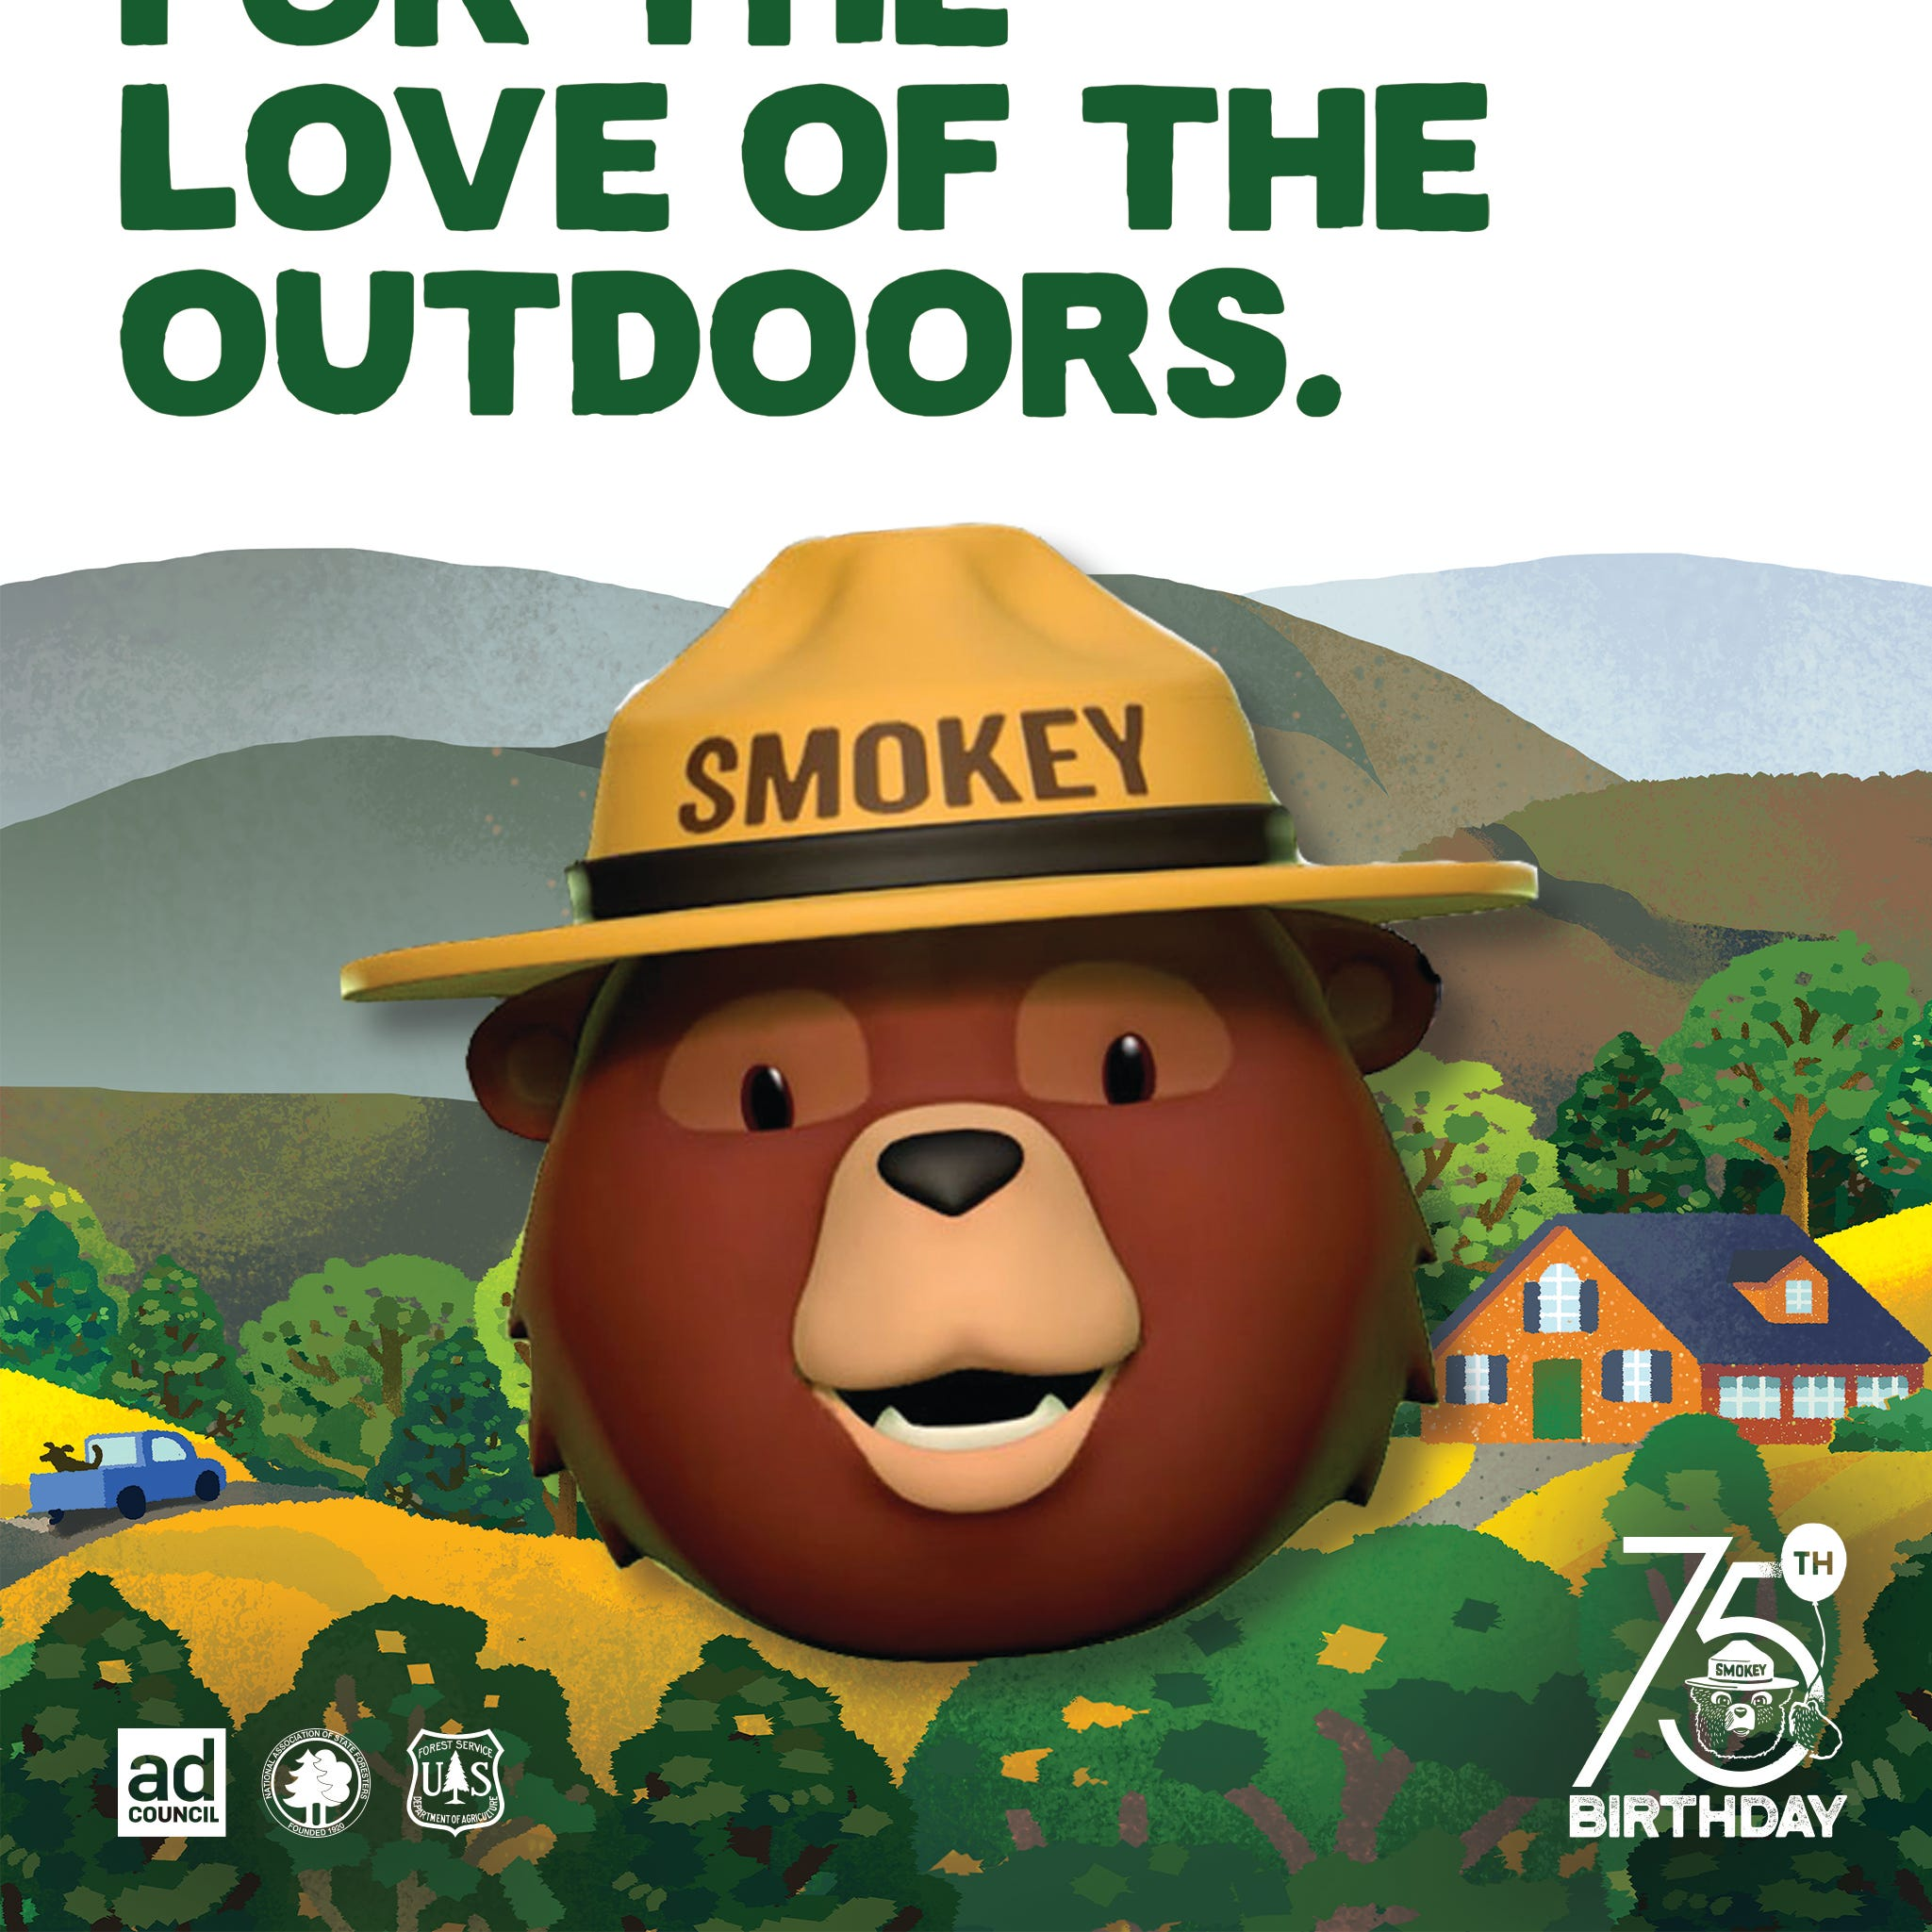 Smokey Bear gets a new voice for his 75th birthday